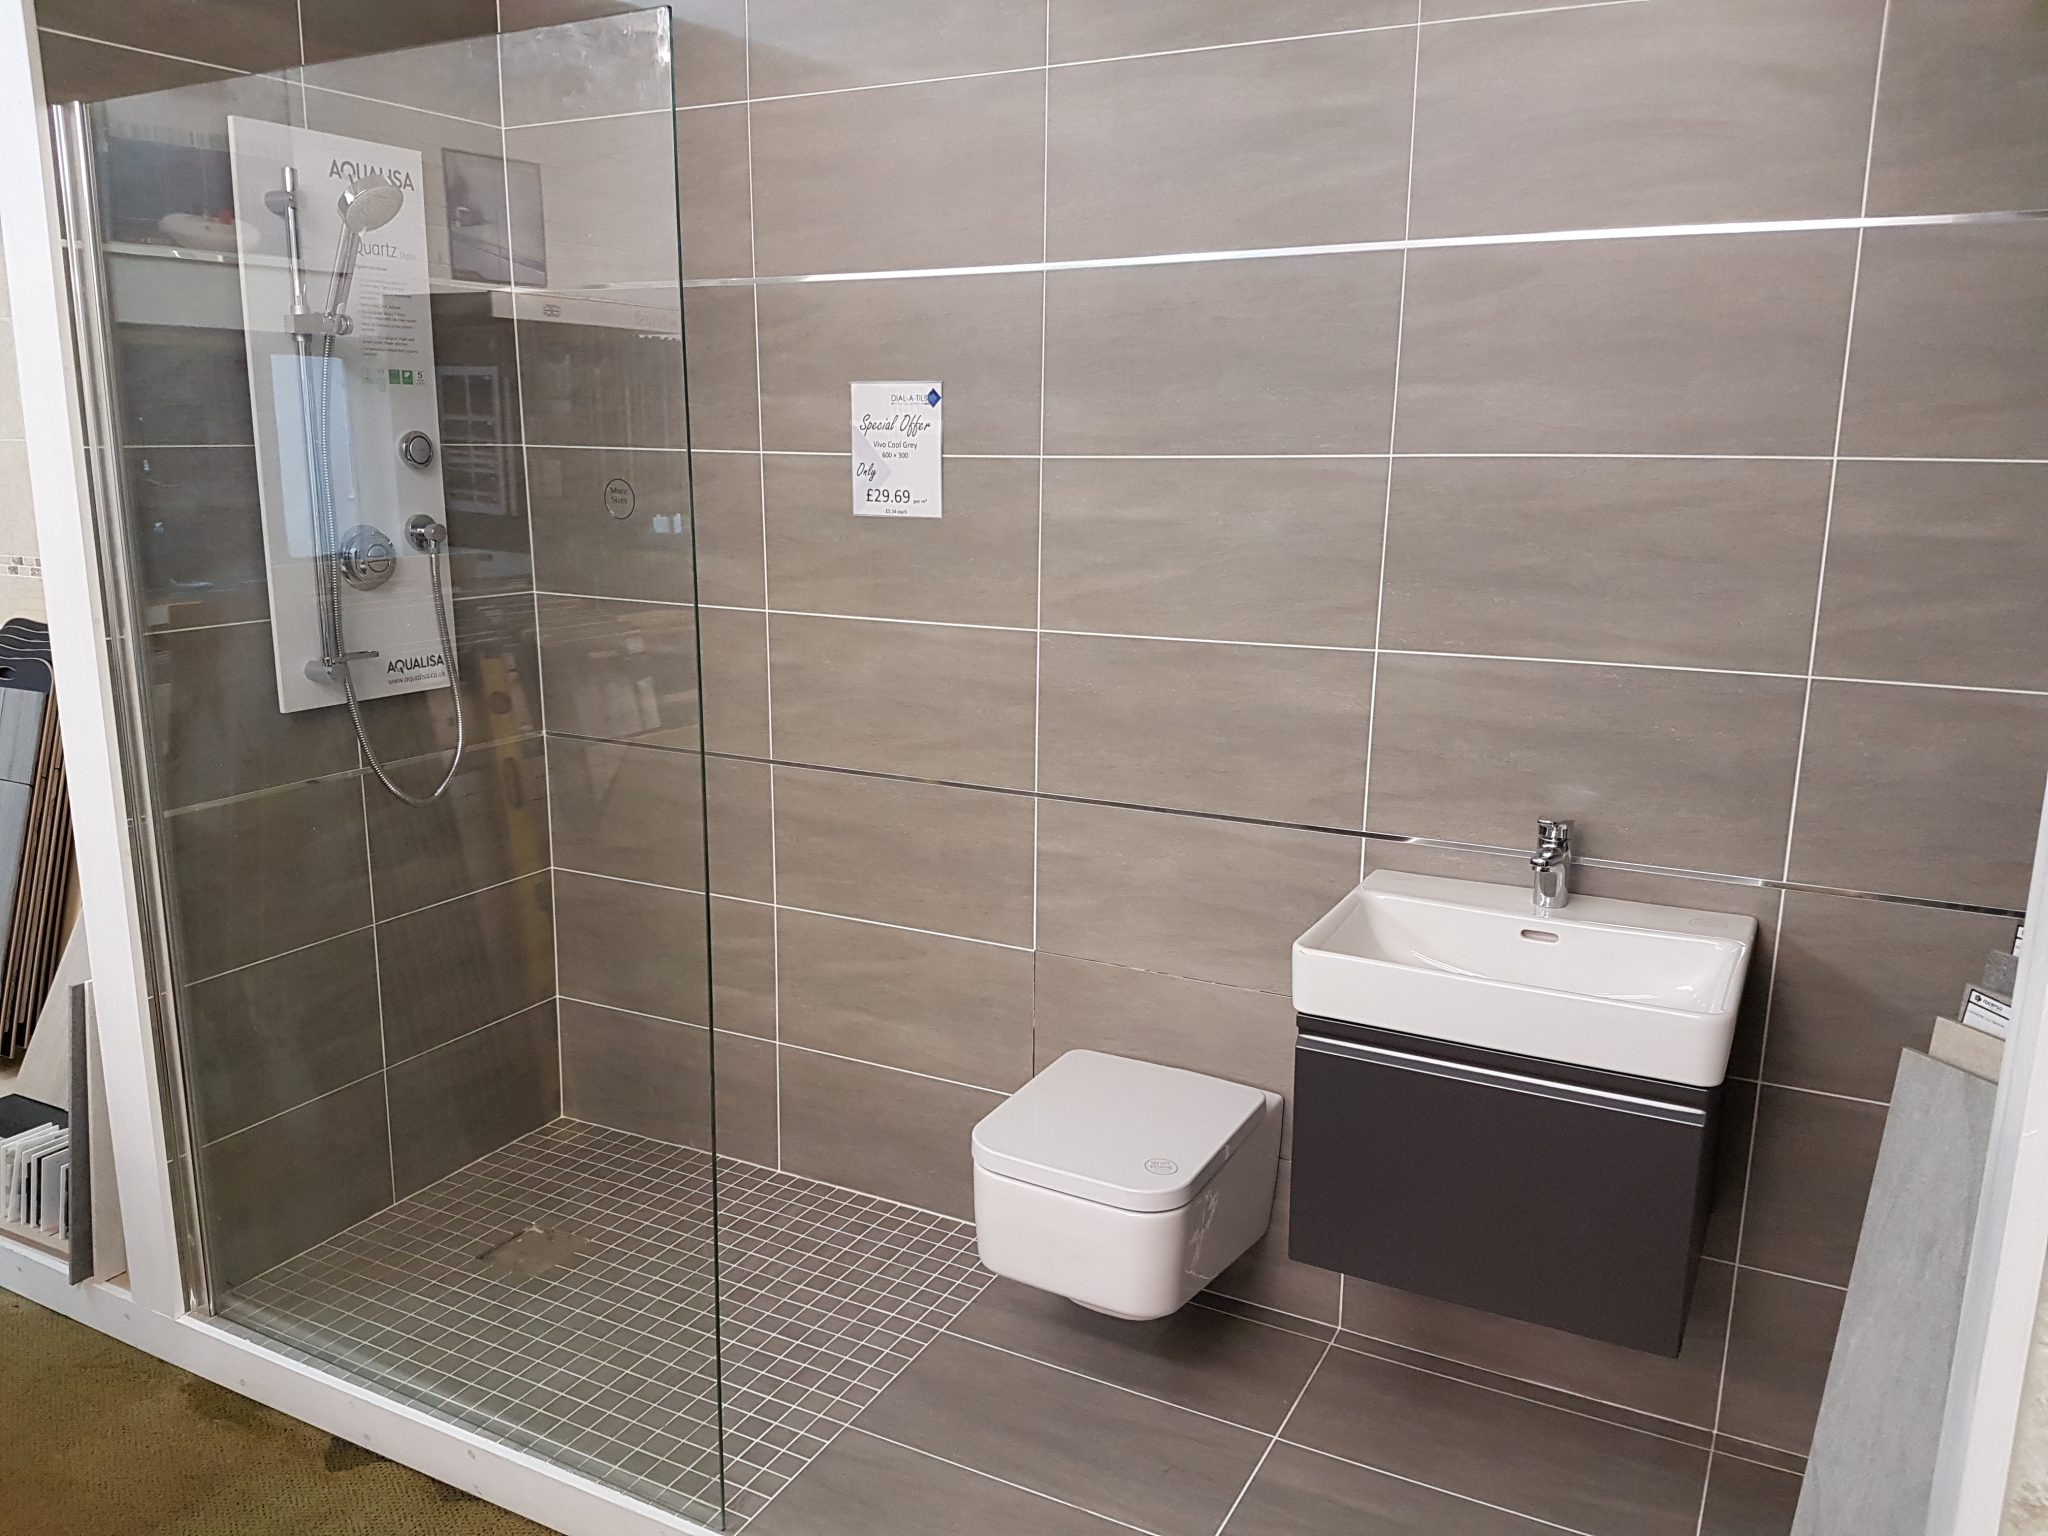 Bathroom showroom Louth